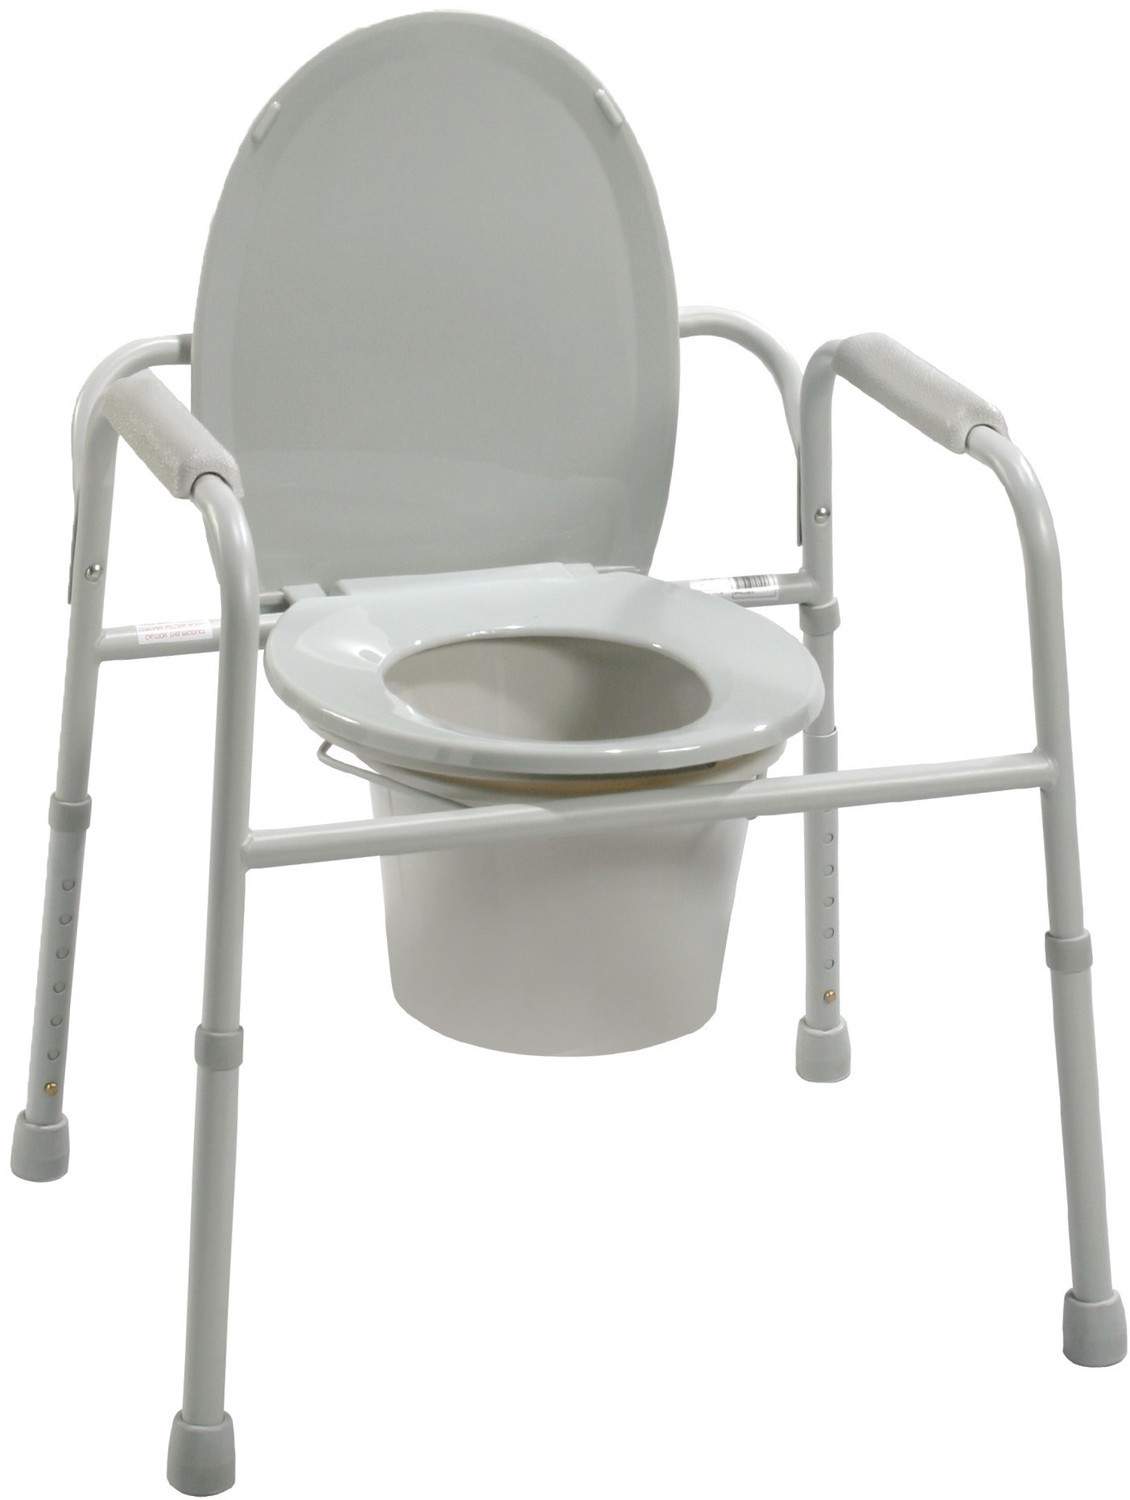 Bedside Commode with Bucket and Splash Guard